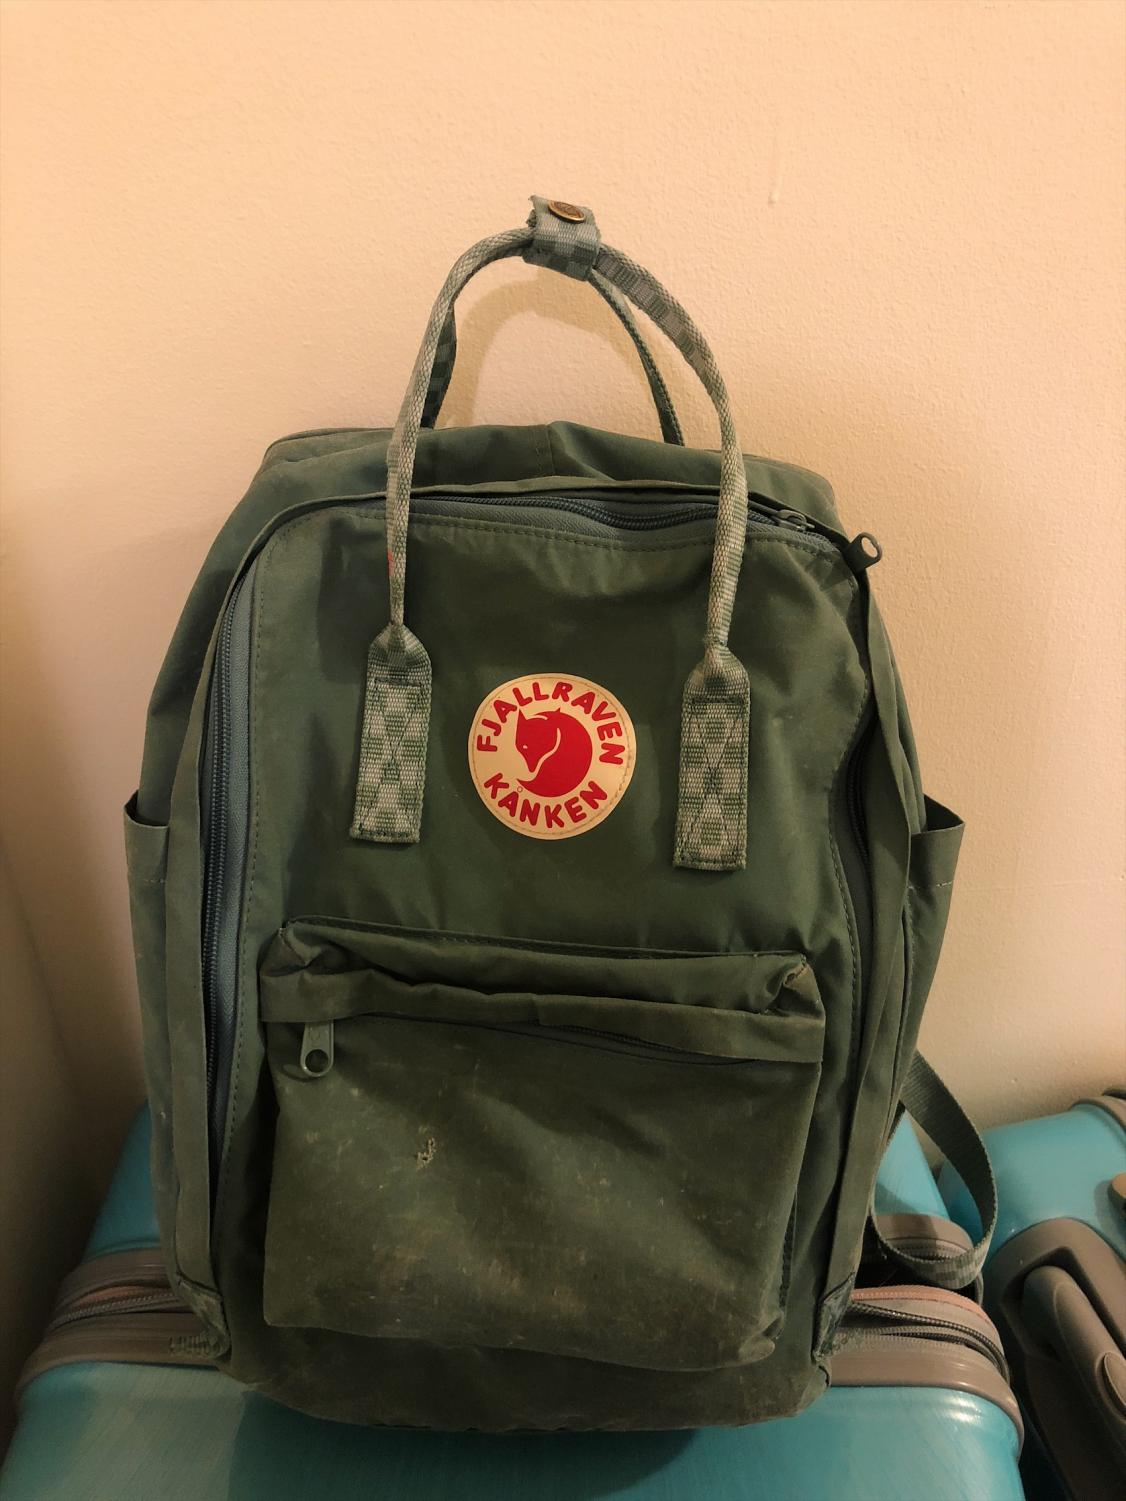 Fjallraven Kanken backpacks come in a variety of colors, but are universally a smaller size than many backpacks.